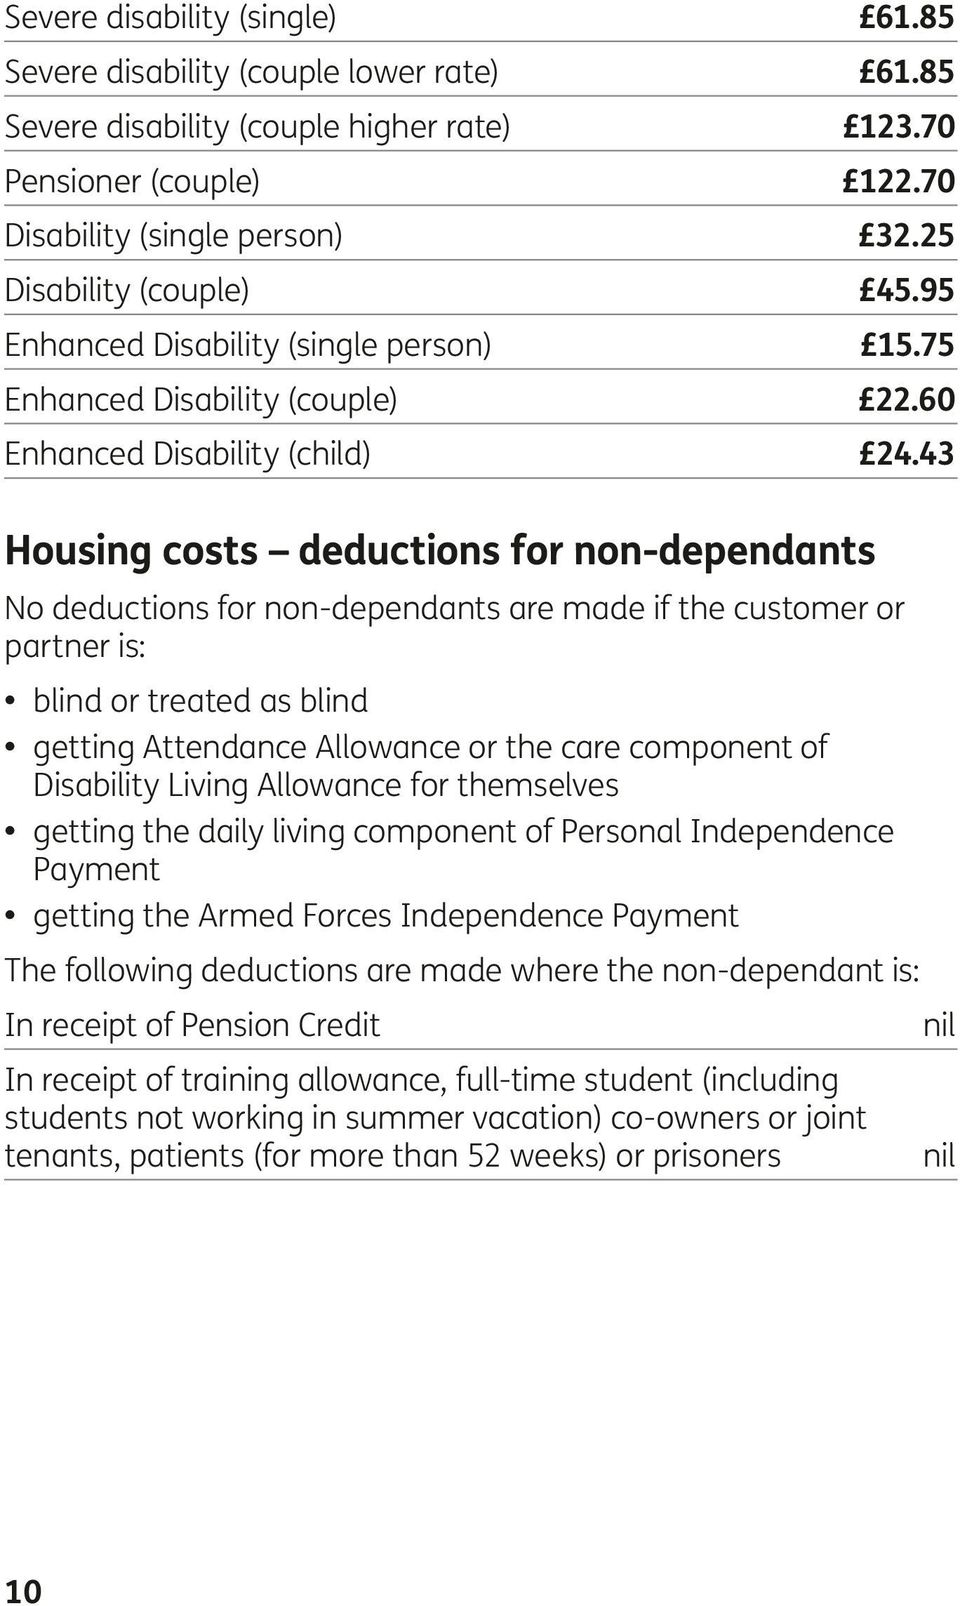 43 Housing costs deductions for non-dependants No deductions for non-dependants are made if the customer or partner is: blind or treated as blind getting Attendance Allowance or the care component of